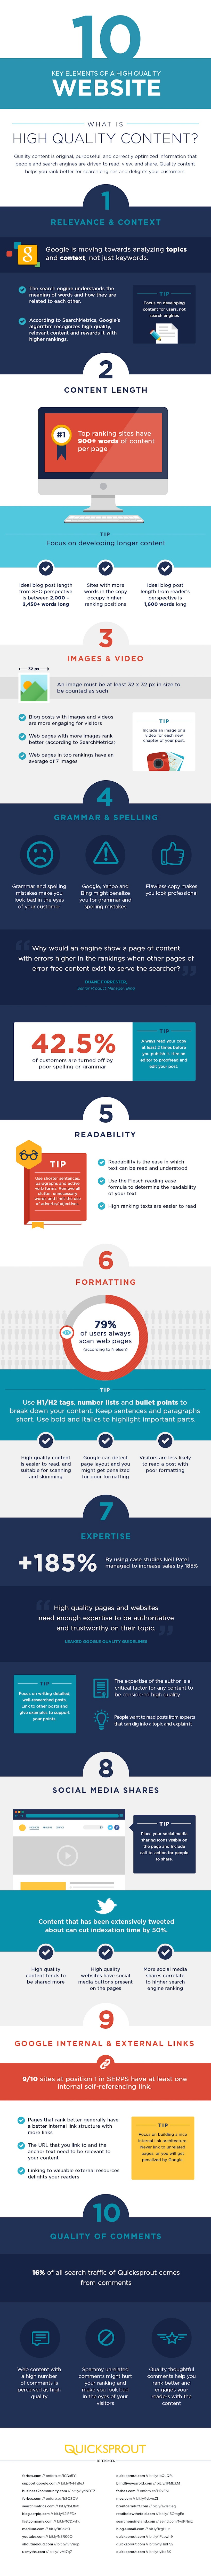 10-key-elements-of-a-high-quality-website-infographic